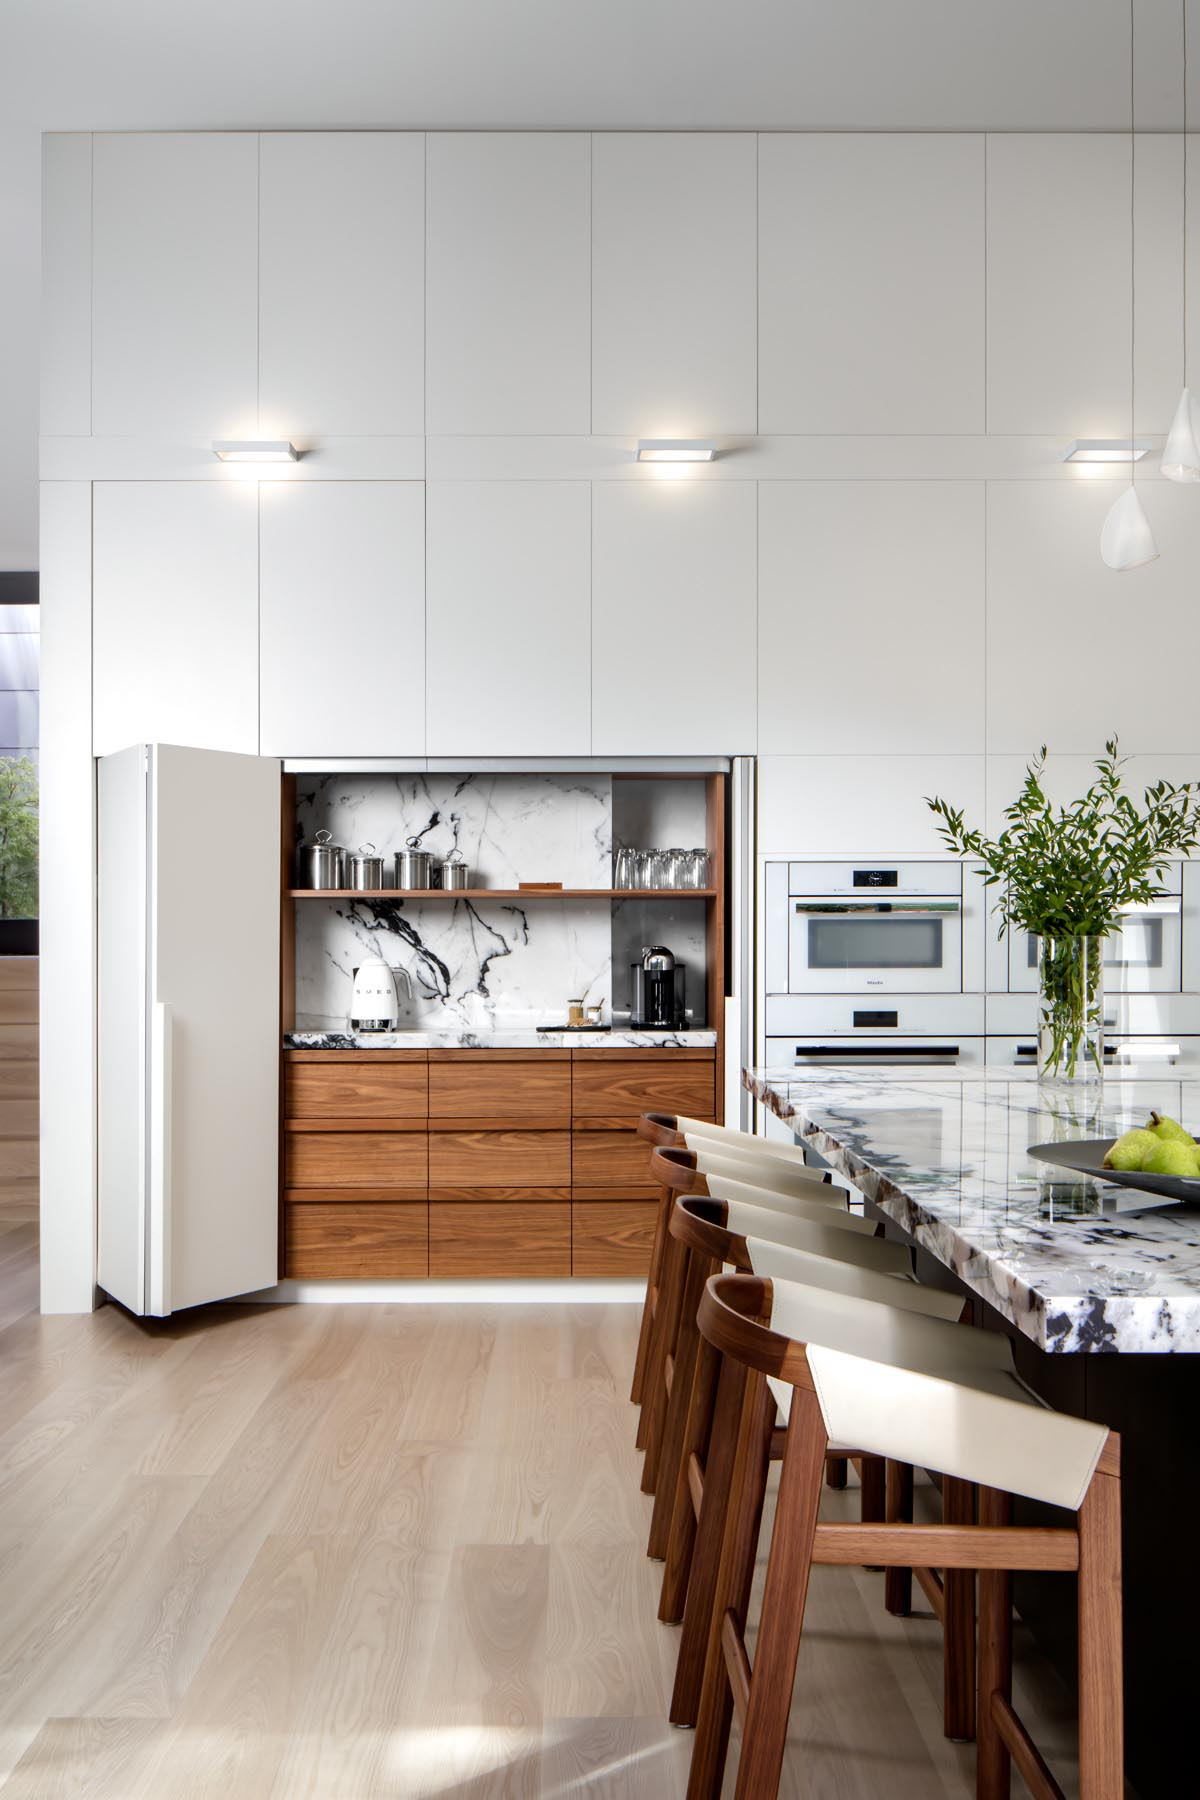 In this kitchen, minimalist white cabinets line the walls, while a large island provides space for multiple stools. Hidden within the cabinetry is a dedicated coffee station.